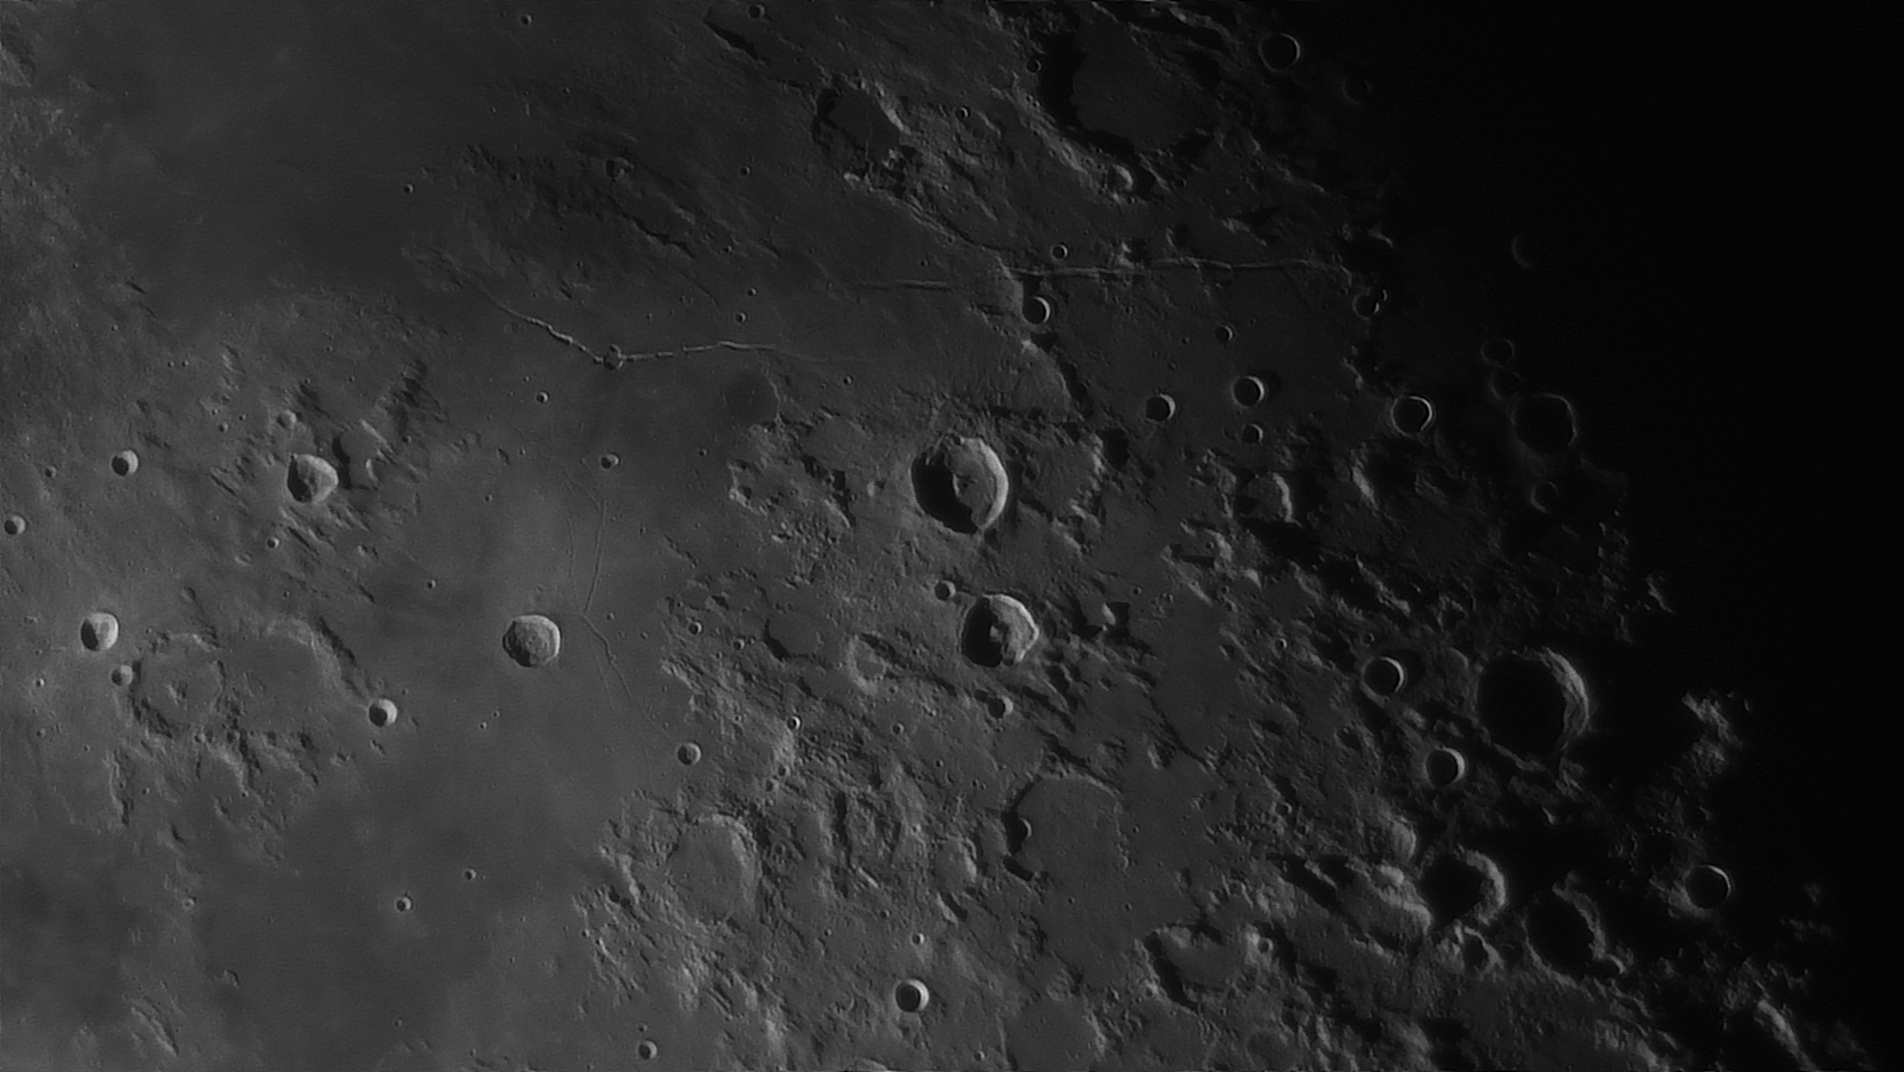 5e5195880dca6_Moon_054816_160120_ZWOASI290MM_Rouge_23A_AS_P35_lapl6_ap820_AI_Deconvolution_12--.jpg.feb69d638aebcc0a5eec3d74575fdc00.jpg